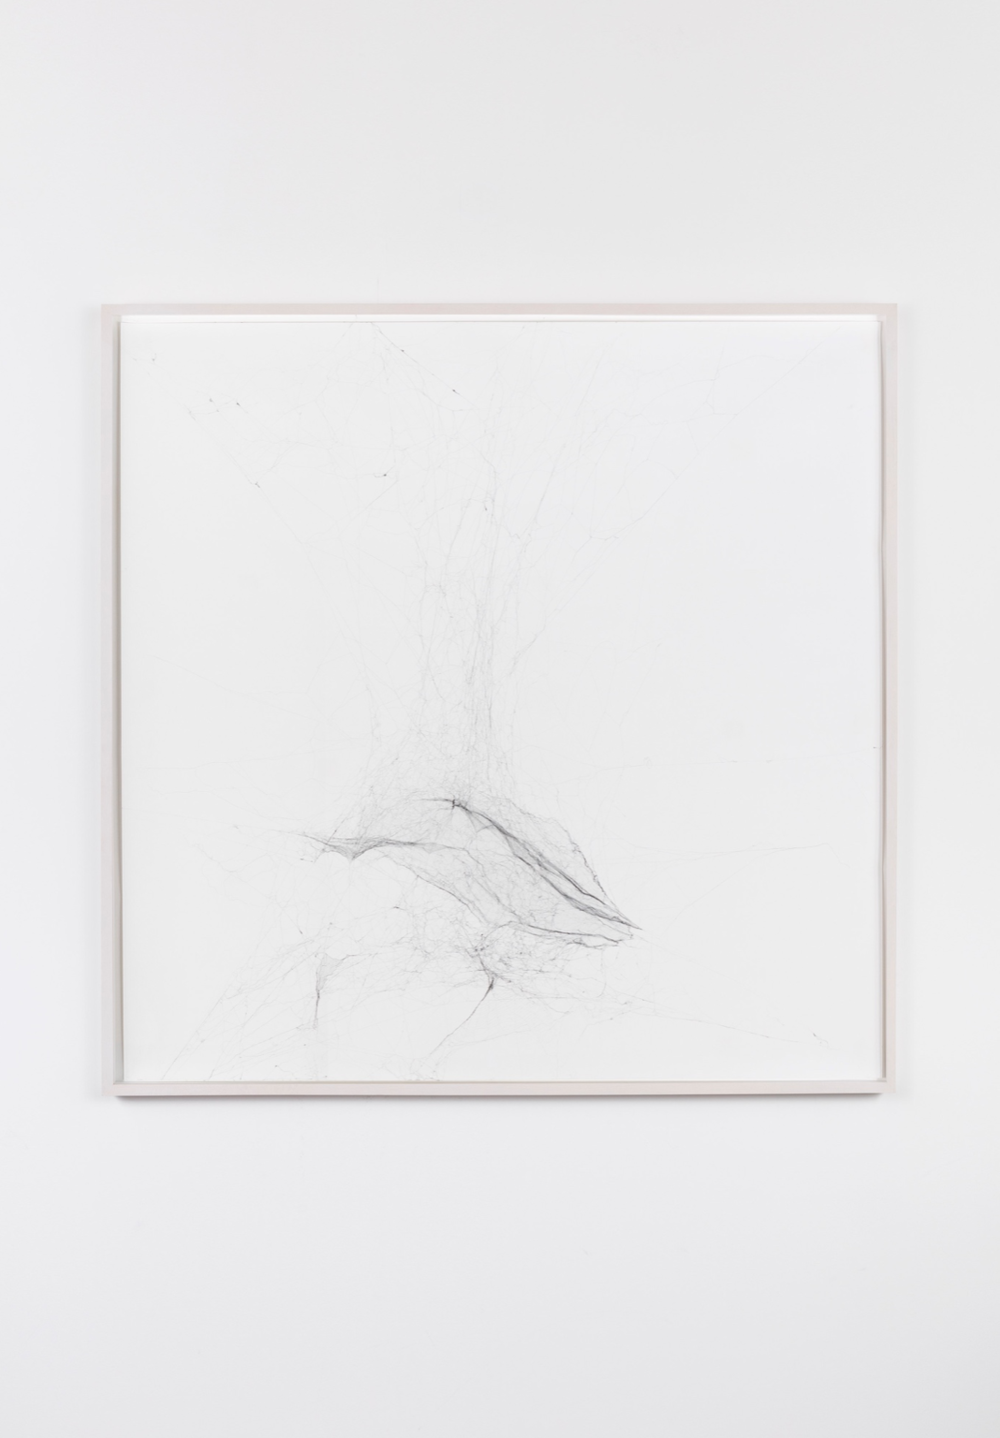 Tomás Saraceno    Solitary Semi-Social Mapping Of SDSS J1030+0524 By A Solo Nephila Senegalensis - One WeekAnd A Solo Cyrtophora Citricola - Three Weeks , 2015  Spidersilk, paper, ink glue, gloss 92,5 x 92,5 x 5 cm (framed)